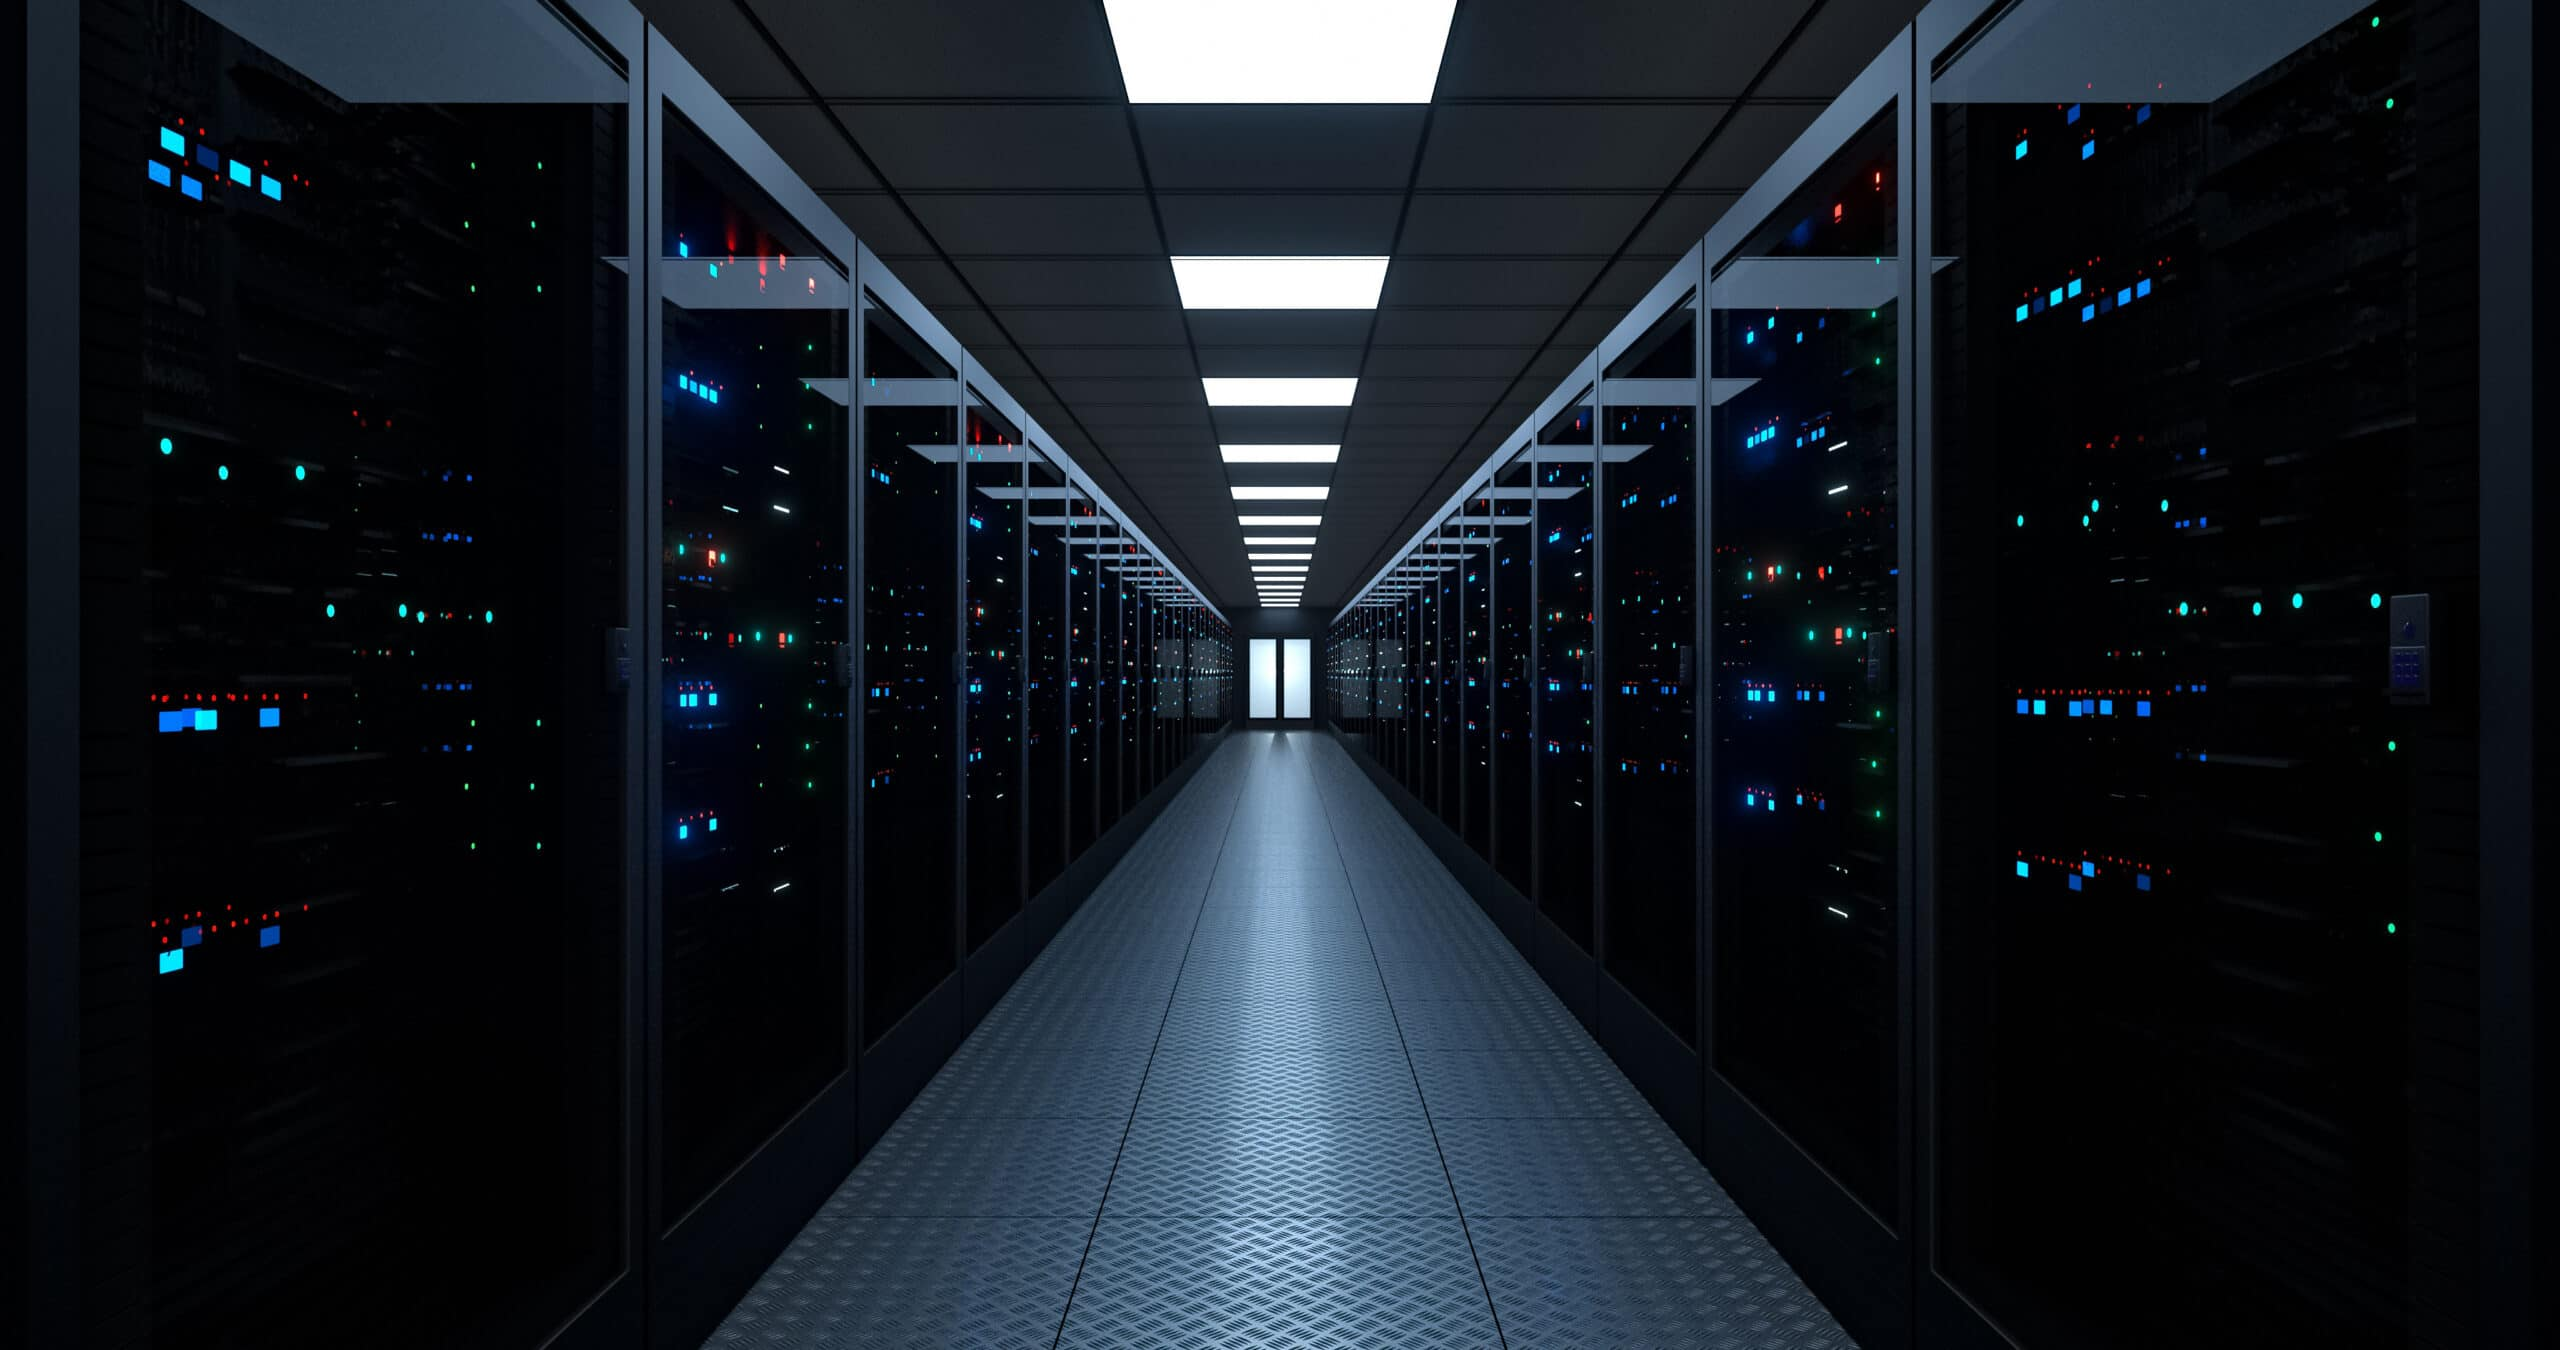 Server room, Data Center. Hosting services. Dark Server Room. Big Data Storage. cloud computing technology.